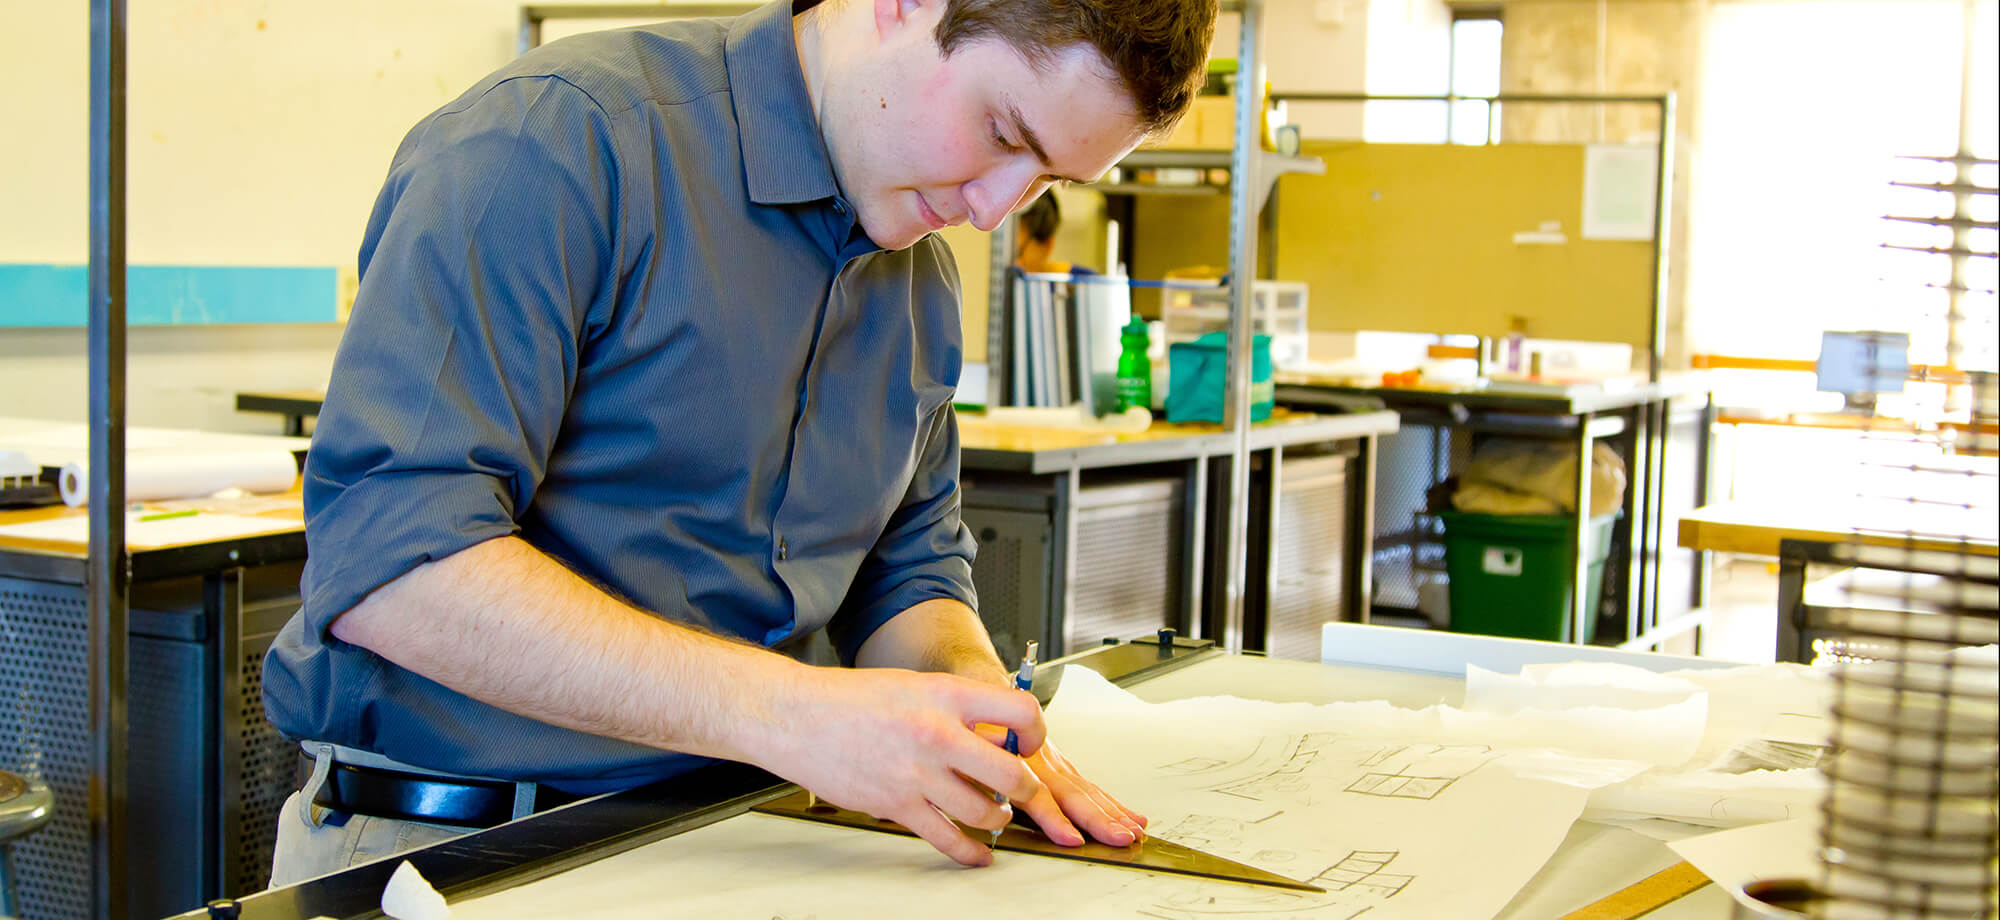 Photo of a young man working on construction plans in a workshop.